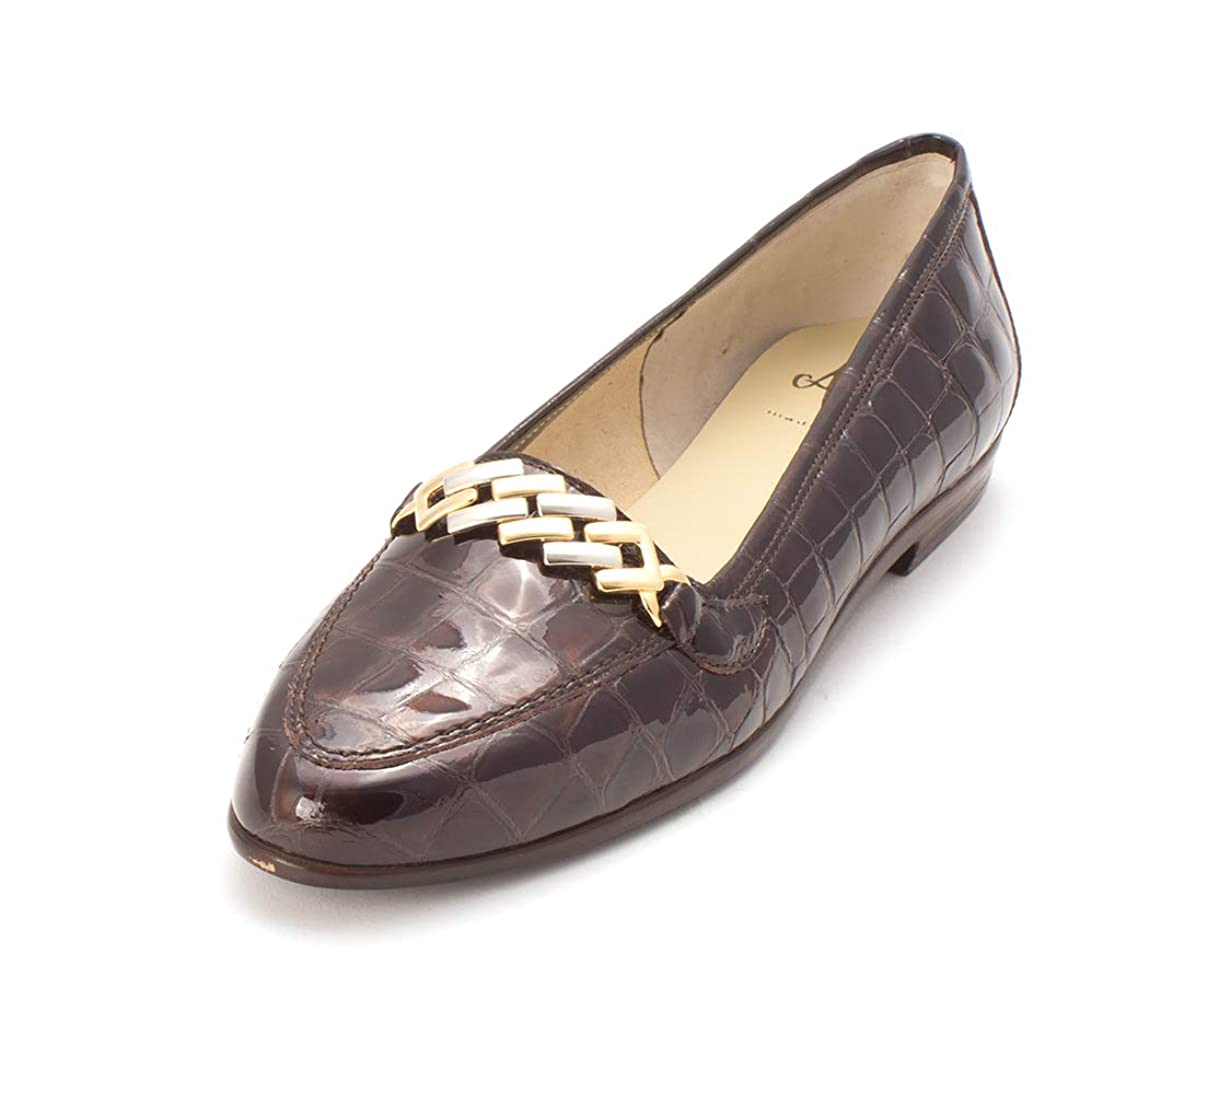 望むおとなしい甥[Amalfi by Rangoni] Womens Oste Almond Toe Loafers, Brown/New Crocco, Size 7.5 [並行輸入品]